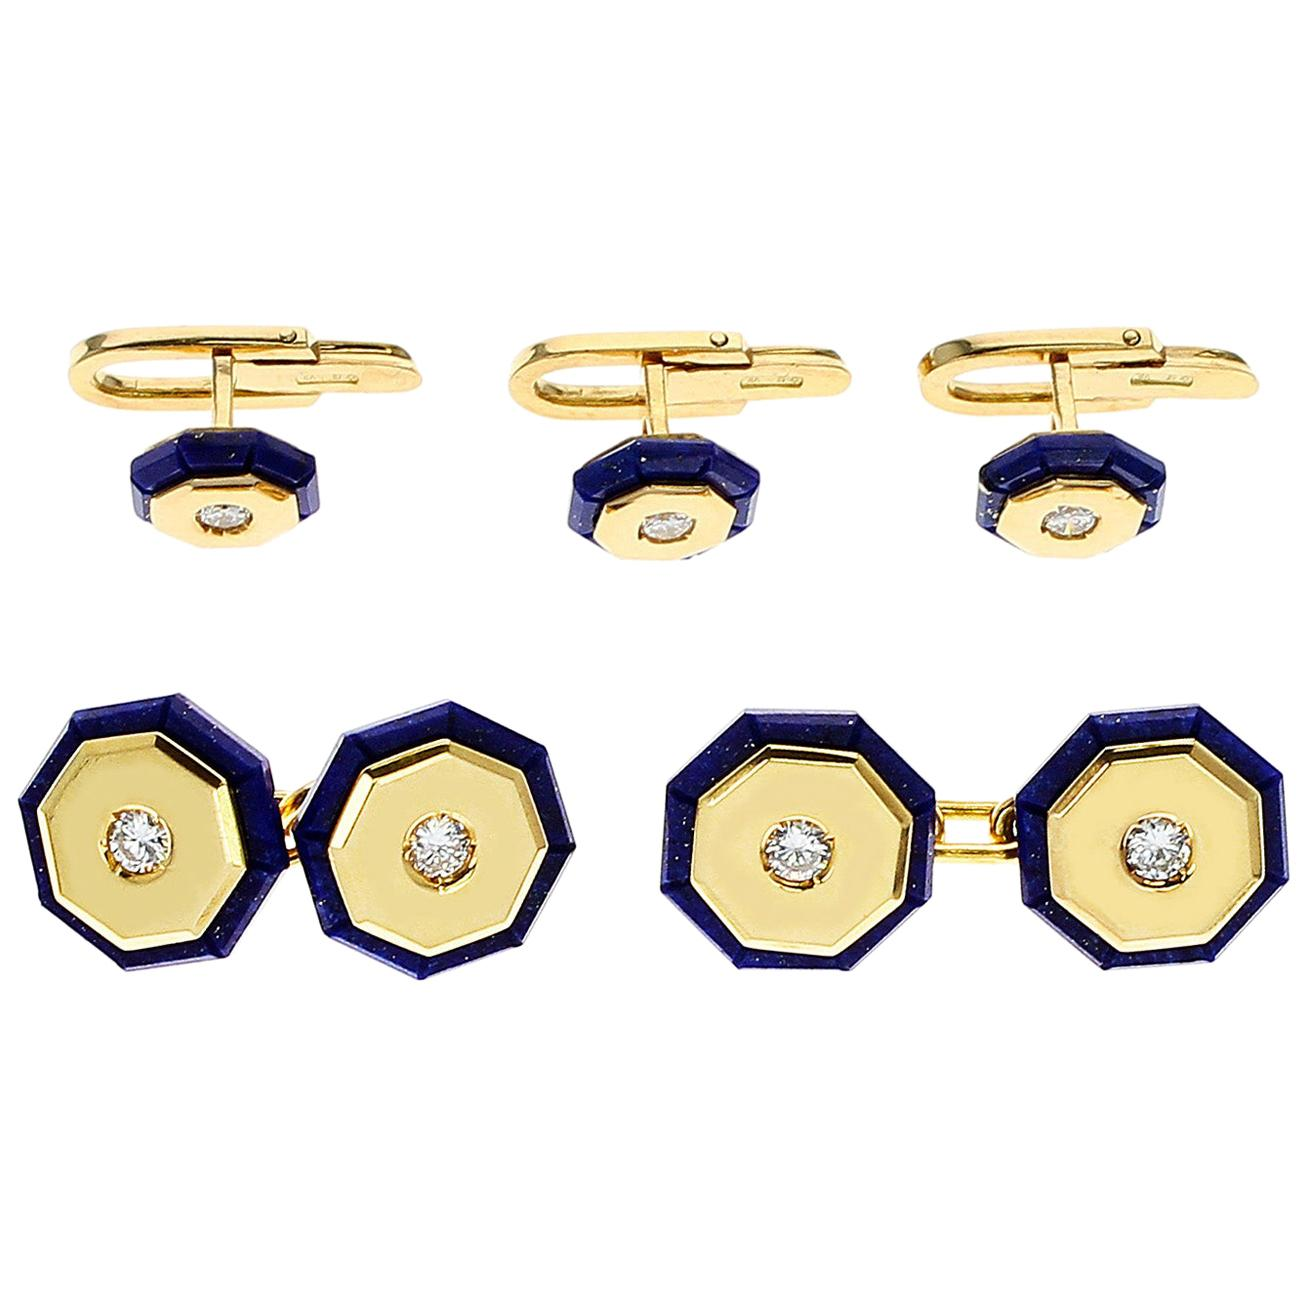 Italy Stamped Lapis and Gold Dress Shirt Pins and Cufflink Set, 18K Yellow Gold